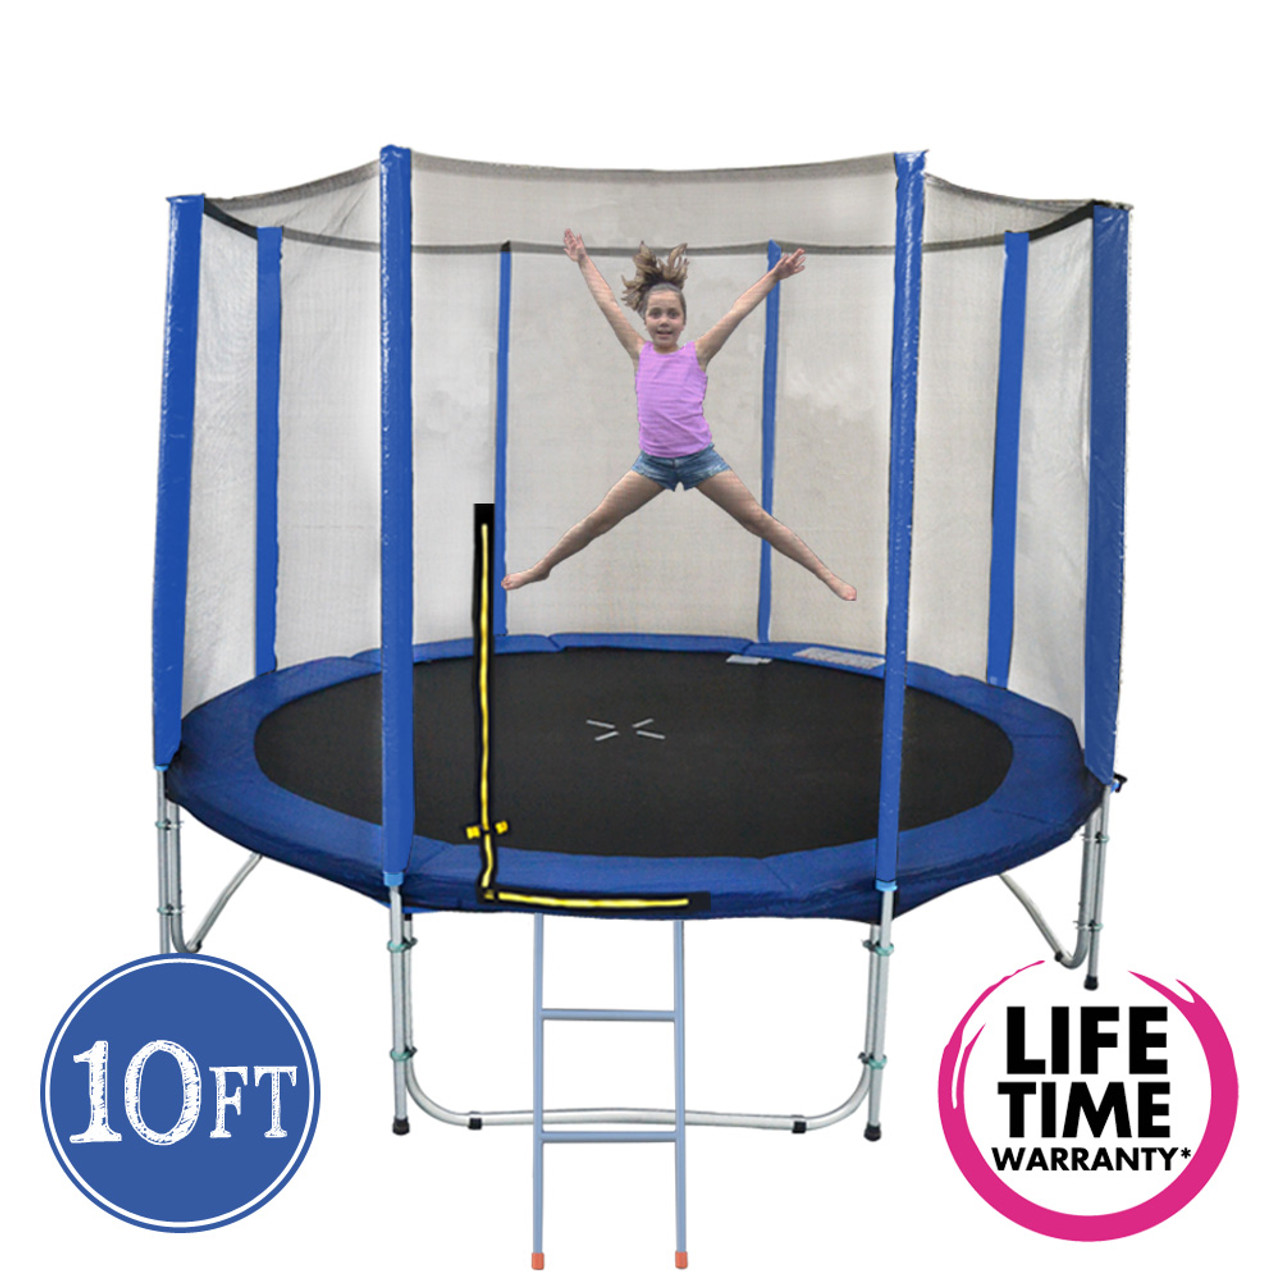 Just how to Execute A Top Decrease to the Trampoline